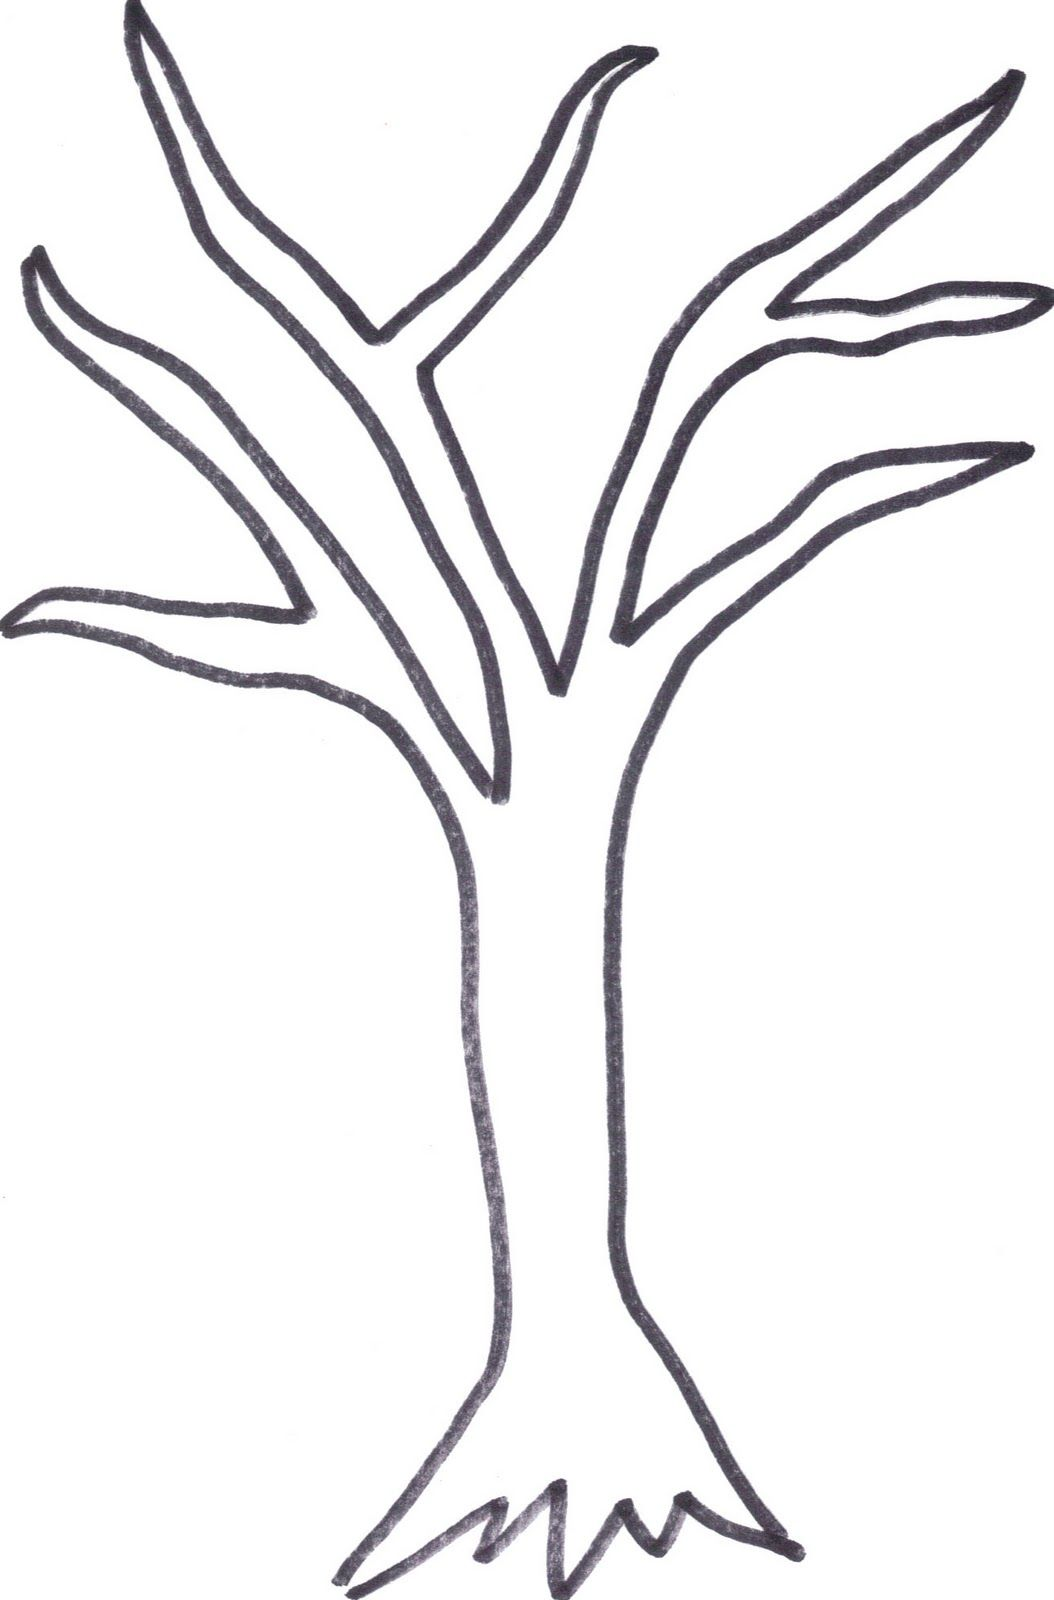 It is a photo of Printable Tree Template within outline